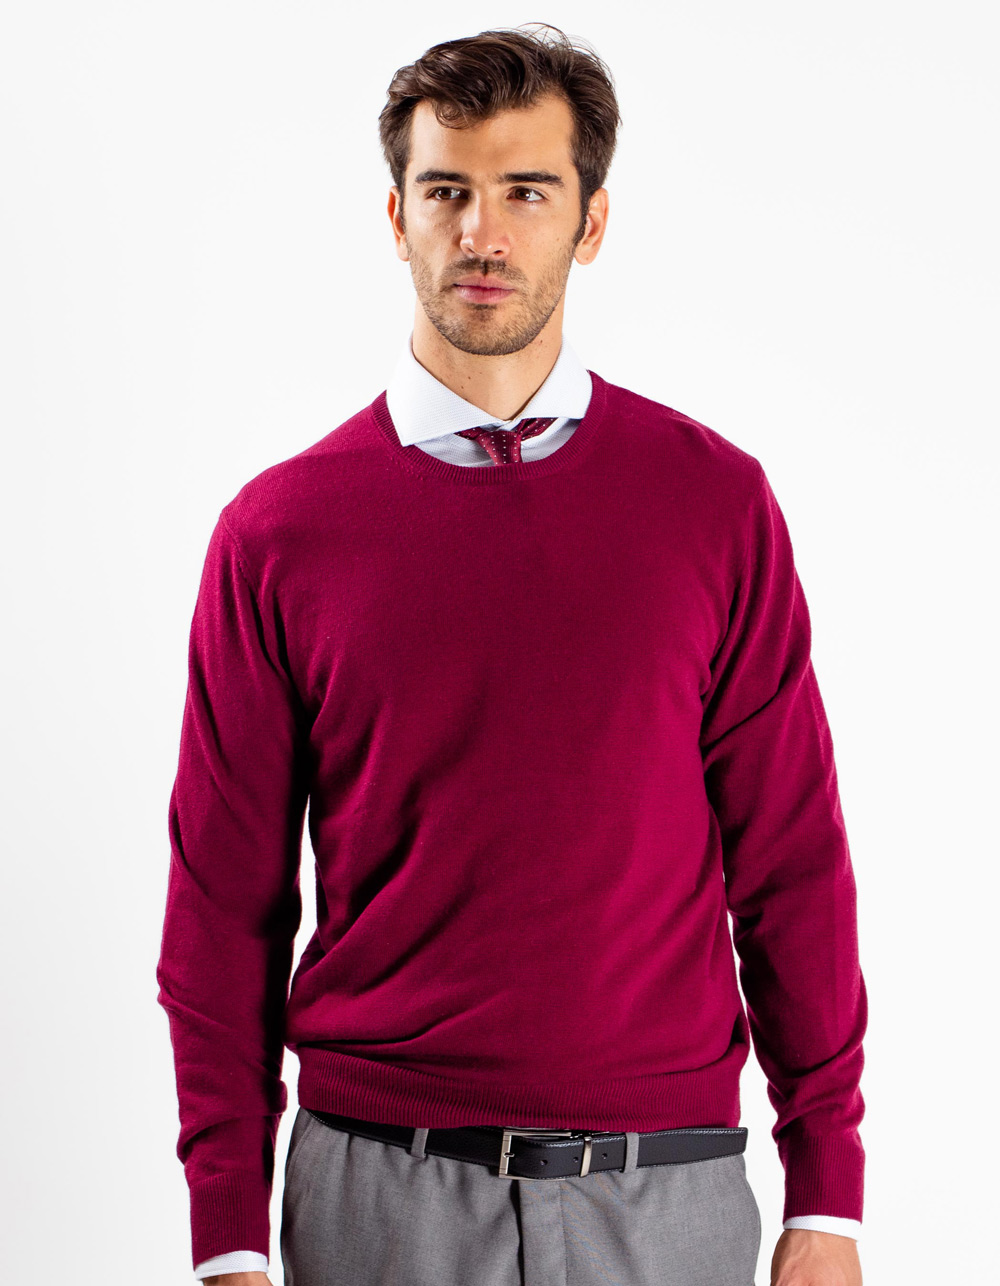 Maroon crew neck sweater